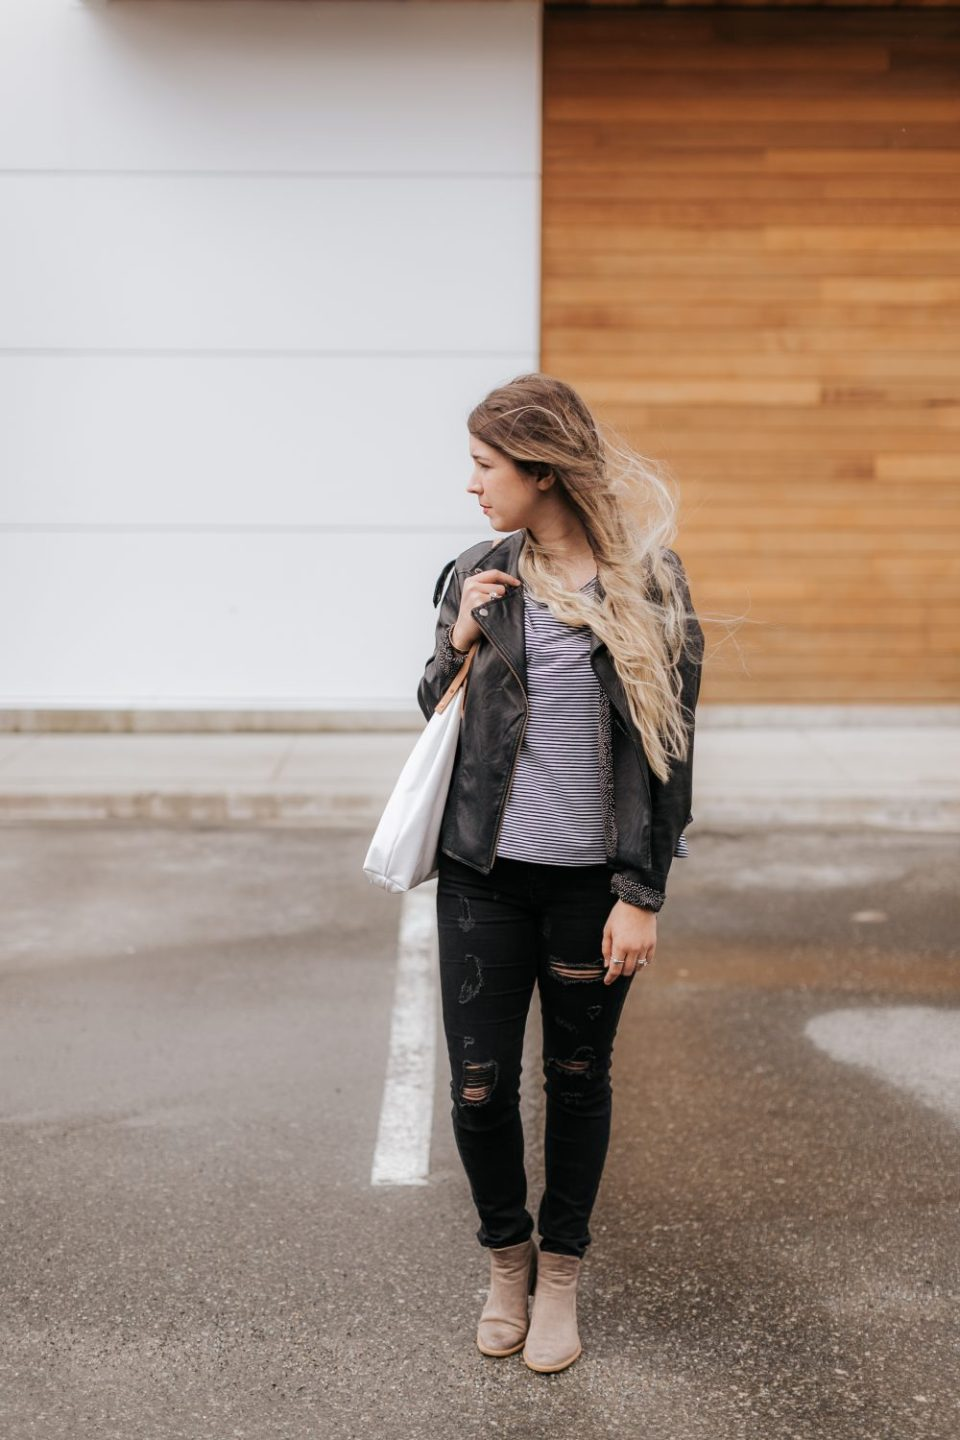 Monochrome Women's Spring Outfit Inspiration | 5 Social Media and Branding Tips